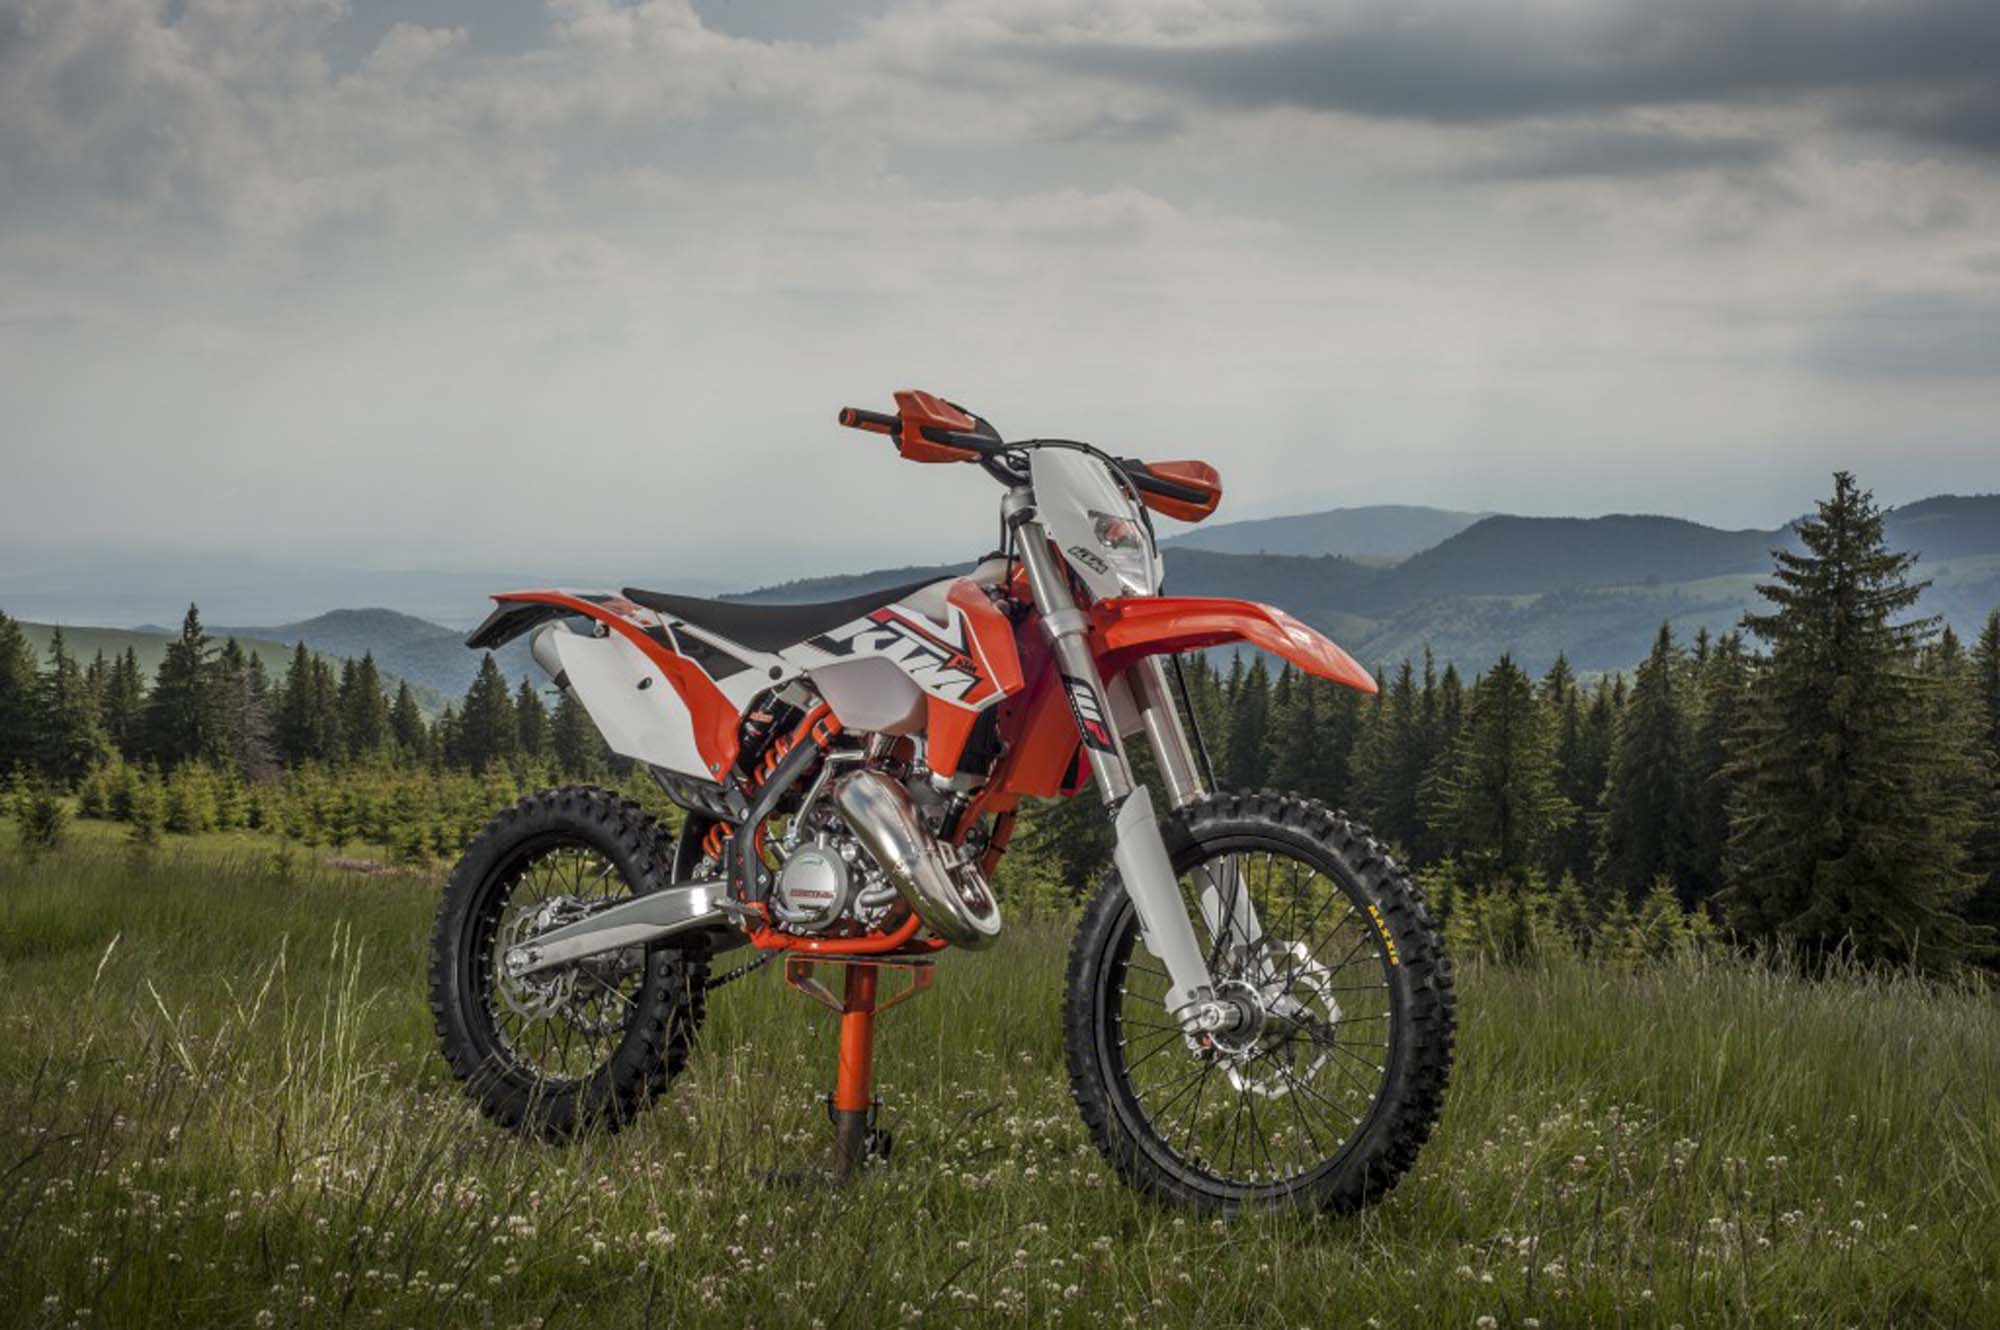 Snap Ktm 200 Exc V 250 300 Test Two Stroke Review Wiring Diagram 125 Six Days Opinie Forum